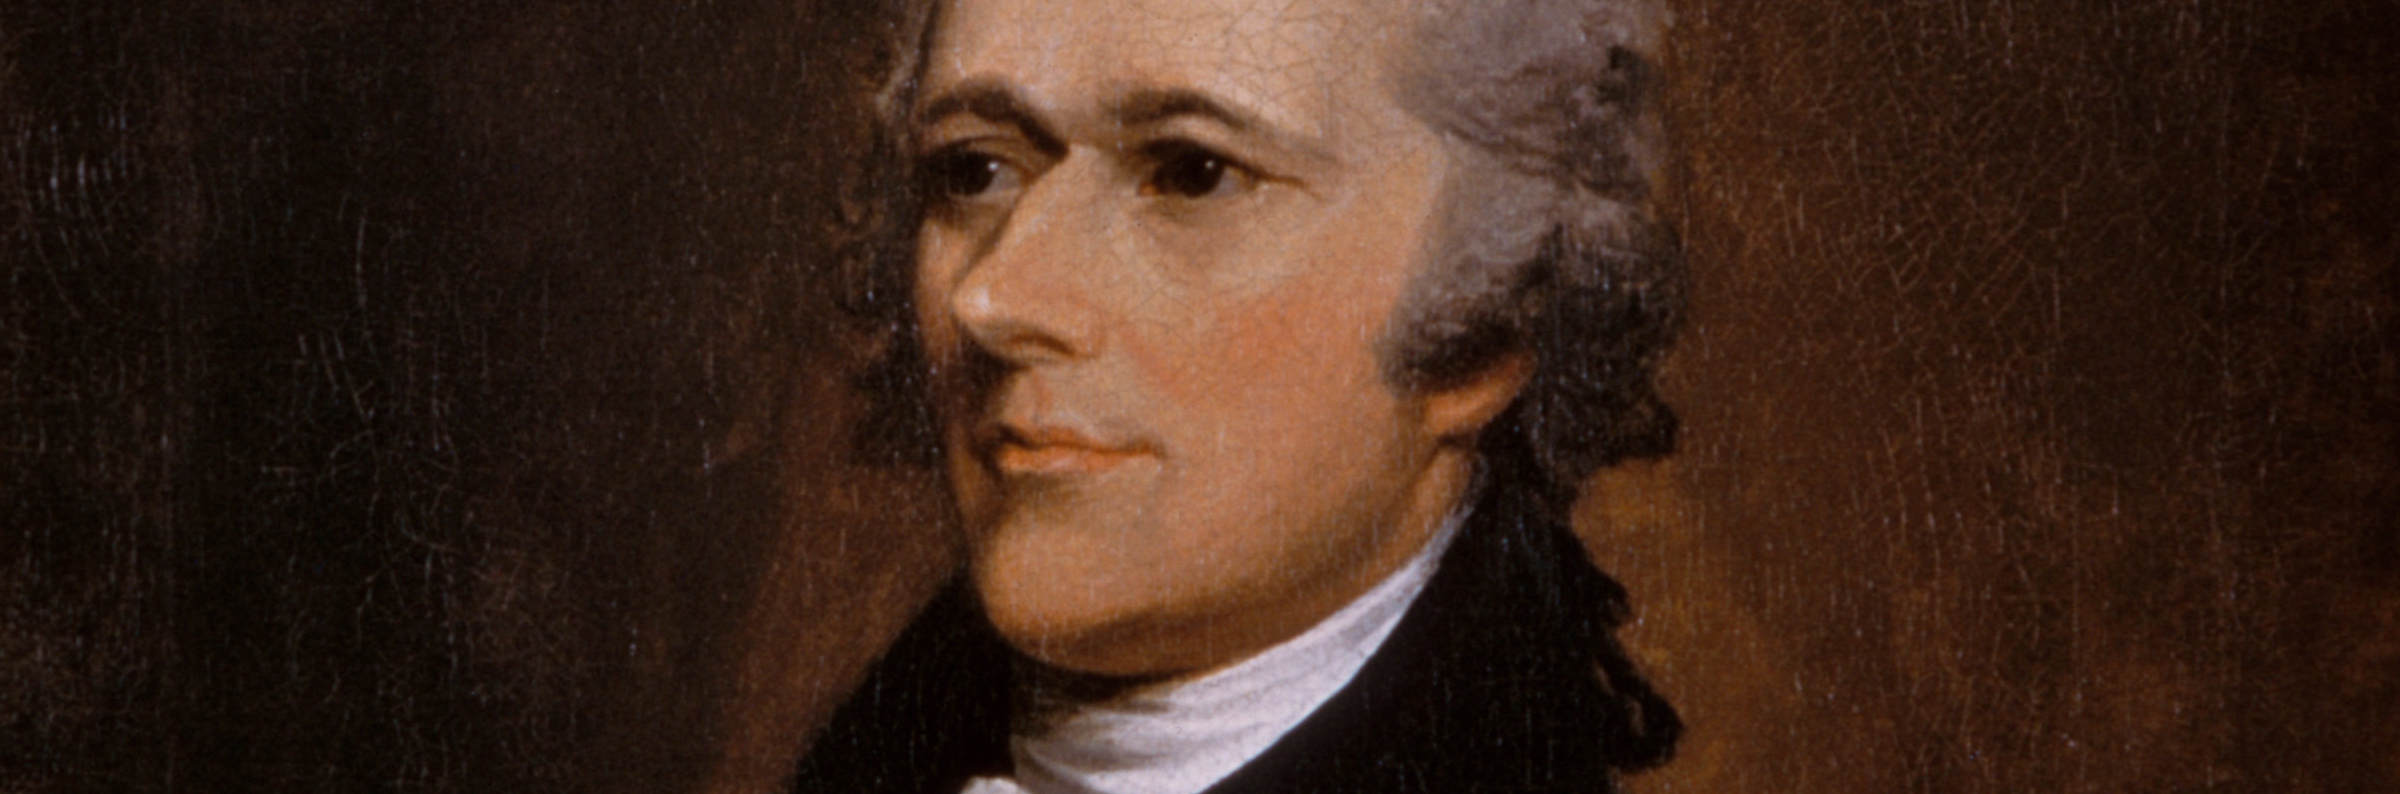 alexander hamilton essay Alexander hamilton began to climb  alexander joins forces with james  madison and john jay to write a series of essays defending the new.